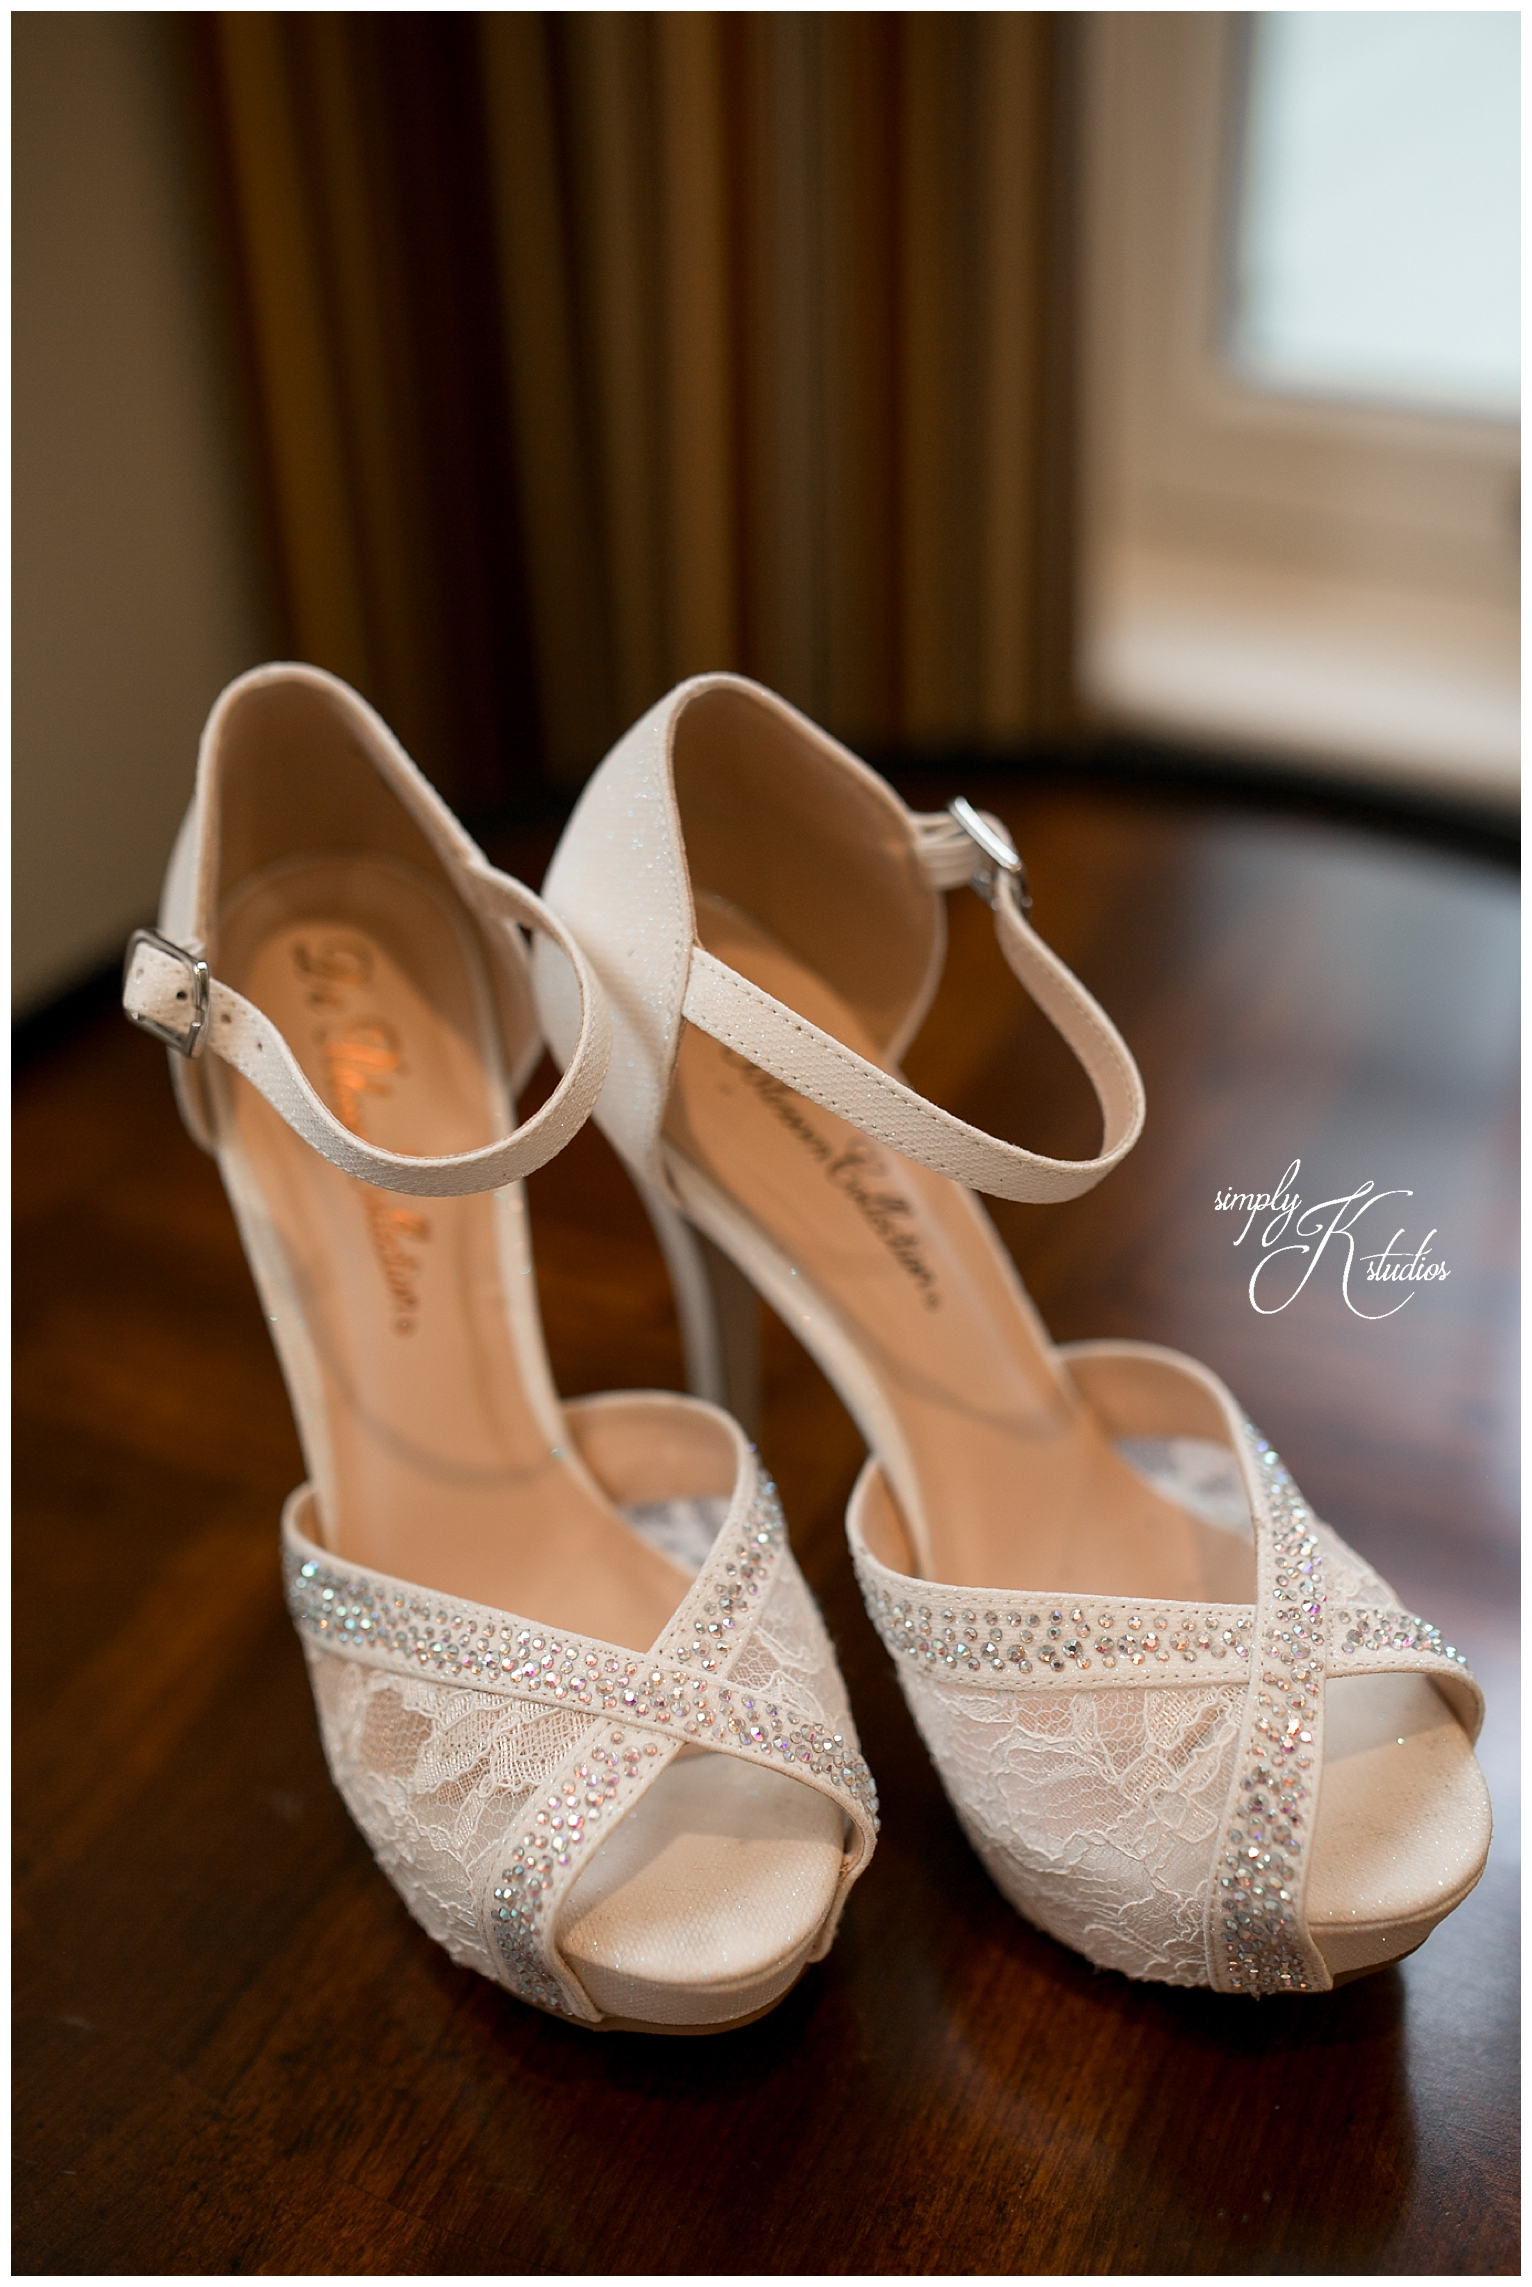 Heels for wedding.jpg